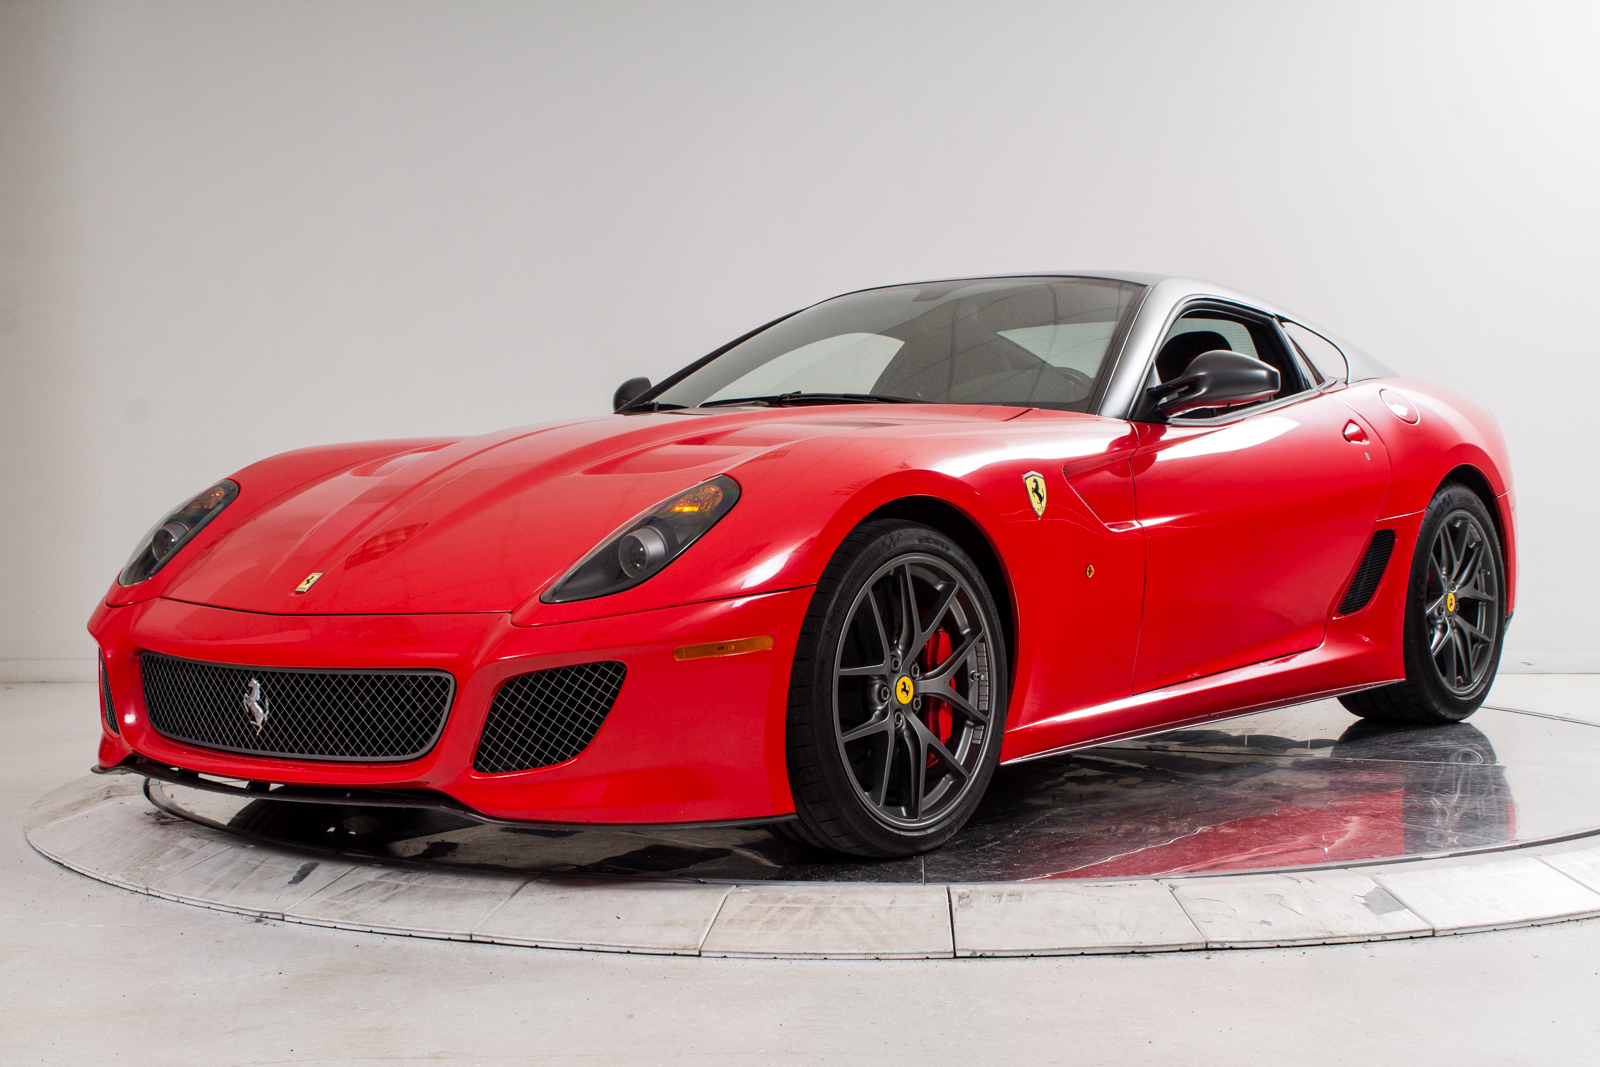 Ferrari 599 Gto Glamorous ferrari 599 gto for sale in the u.s